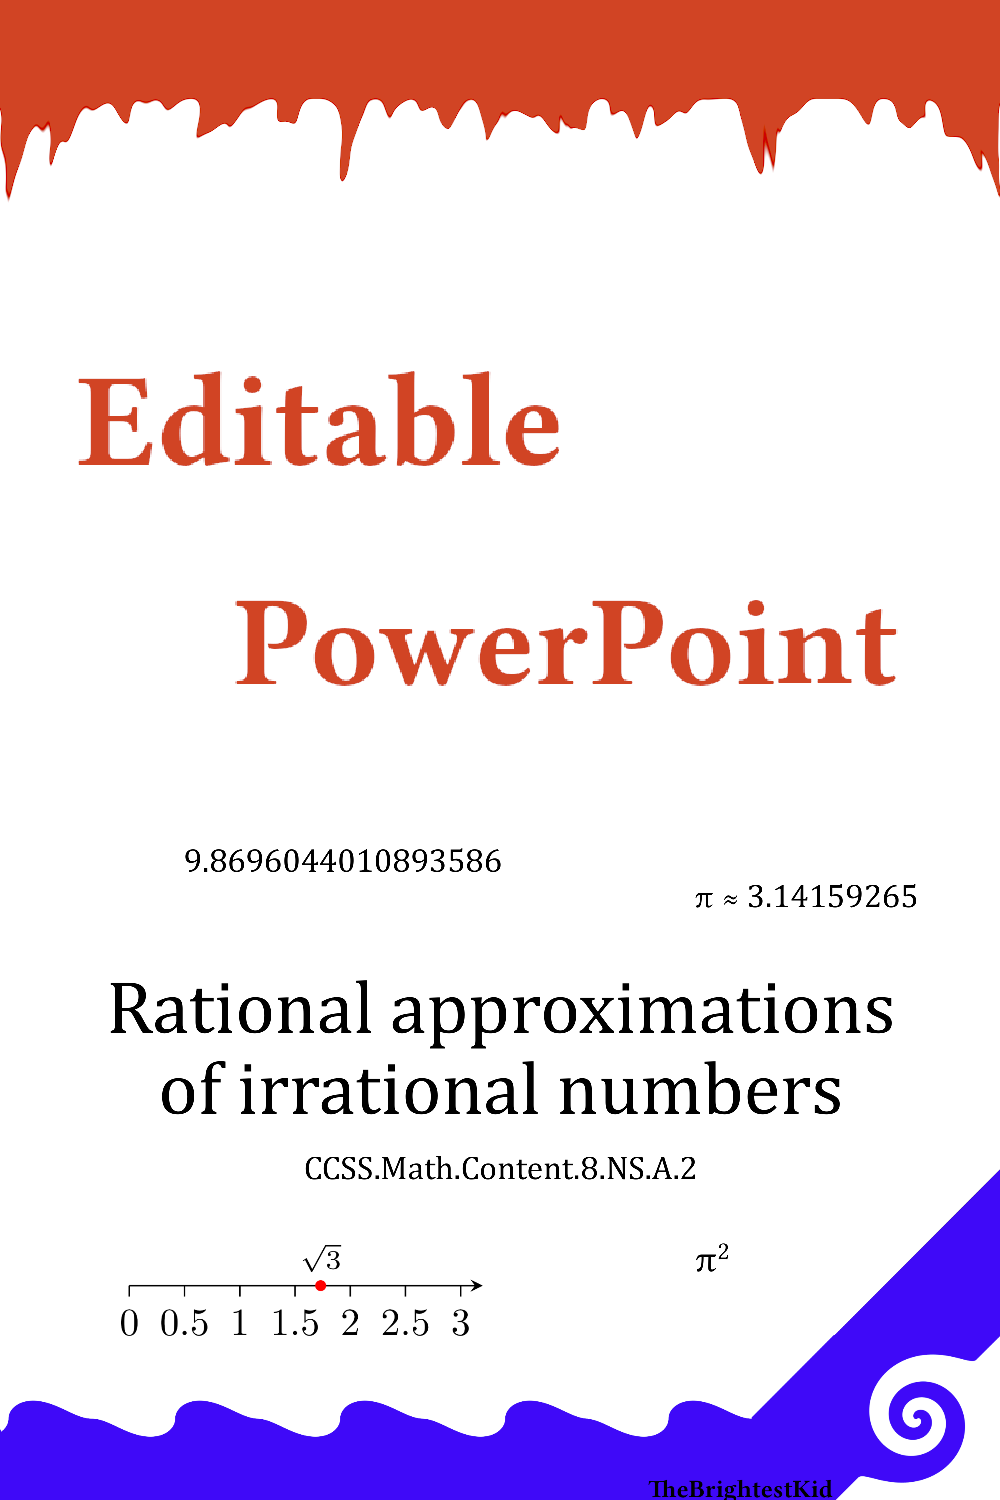 Rational Approximations of Irrational Numbers, editable